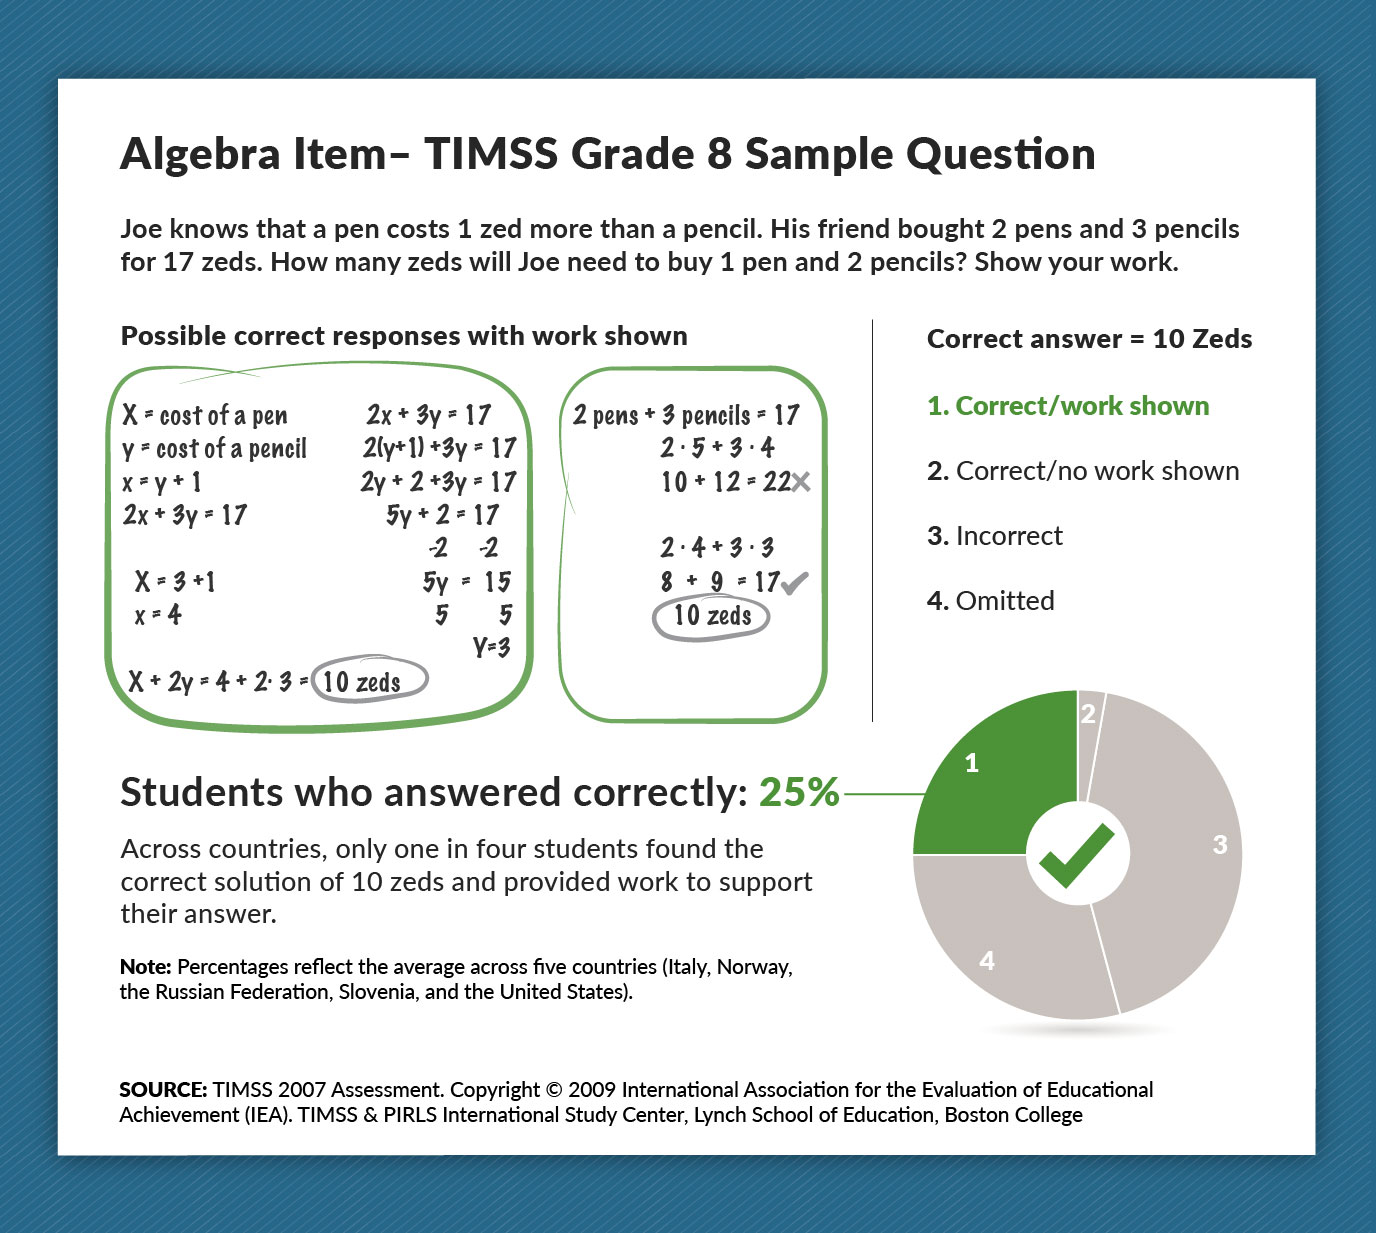 Graphic showing TIMSS algebra question